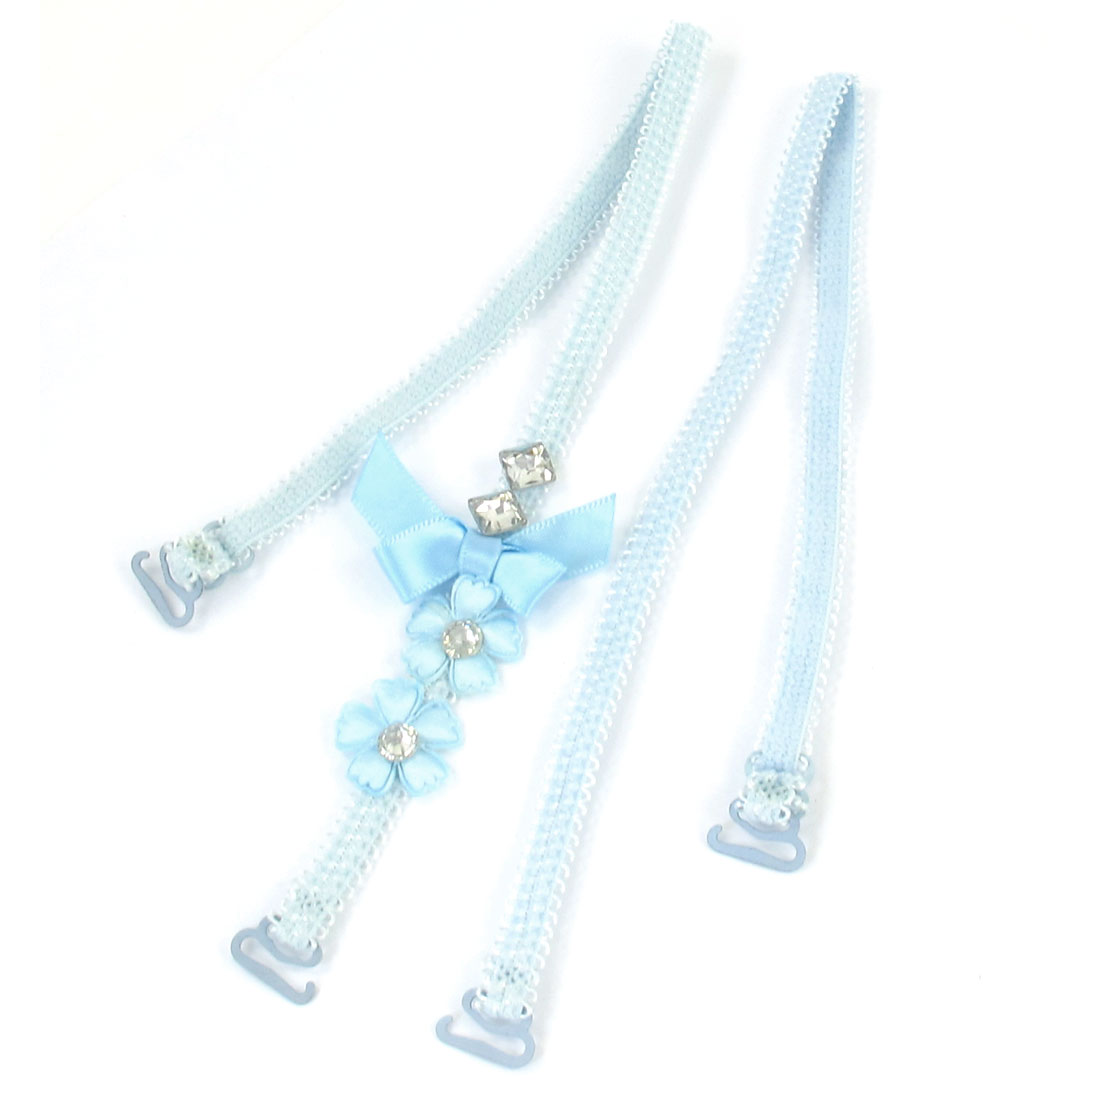 Pair Faux Crystal Bowknot Decor Stretchy Bra Shoulder Strap Light Blue for Women